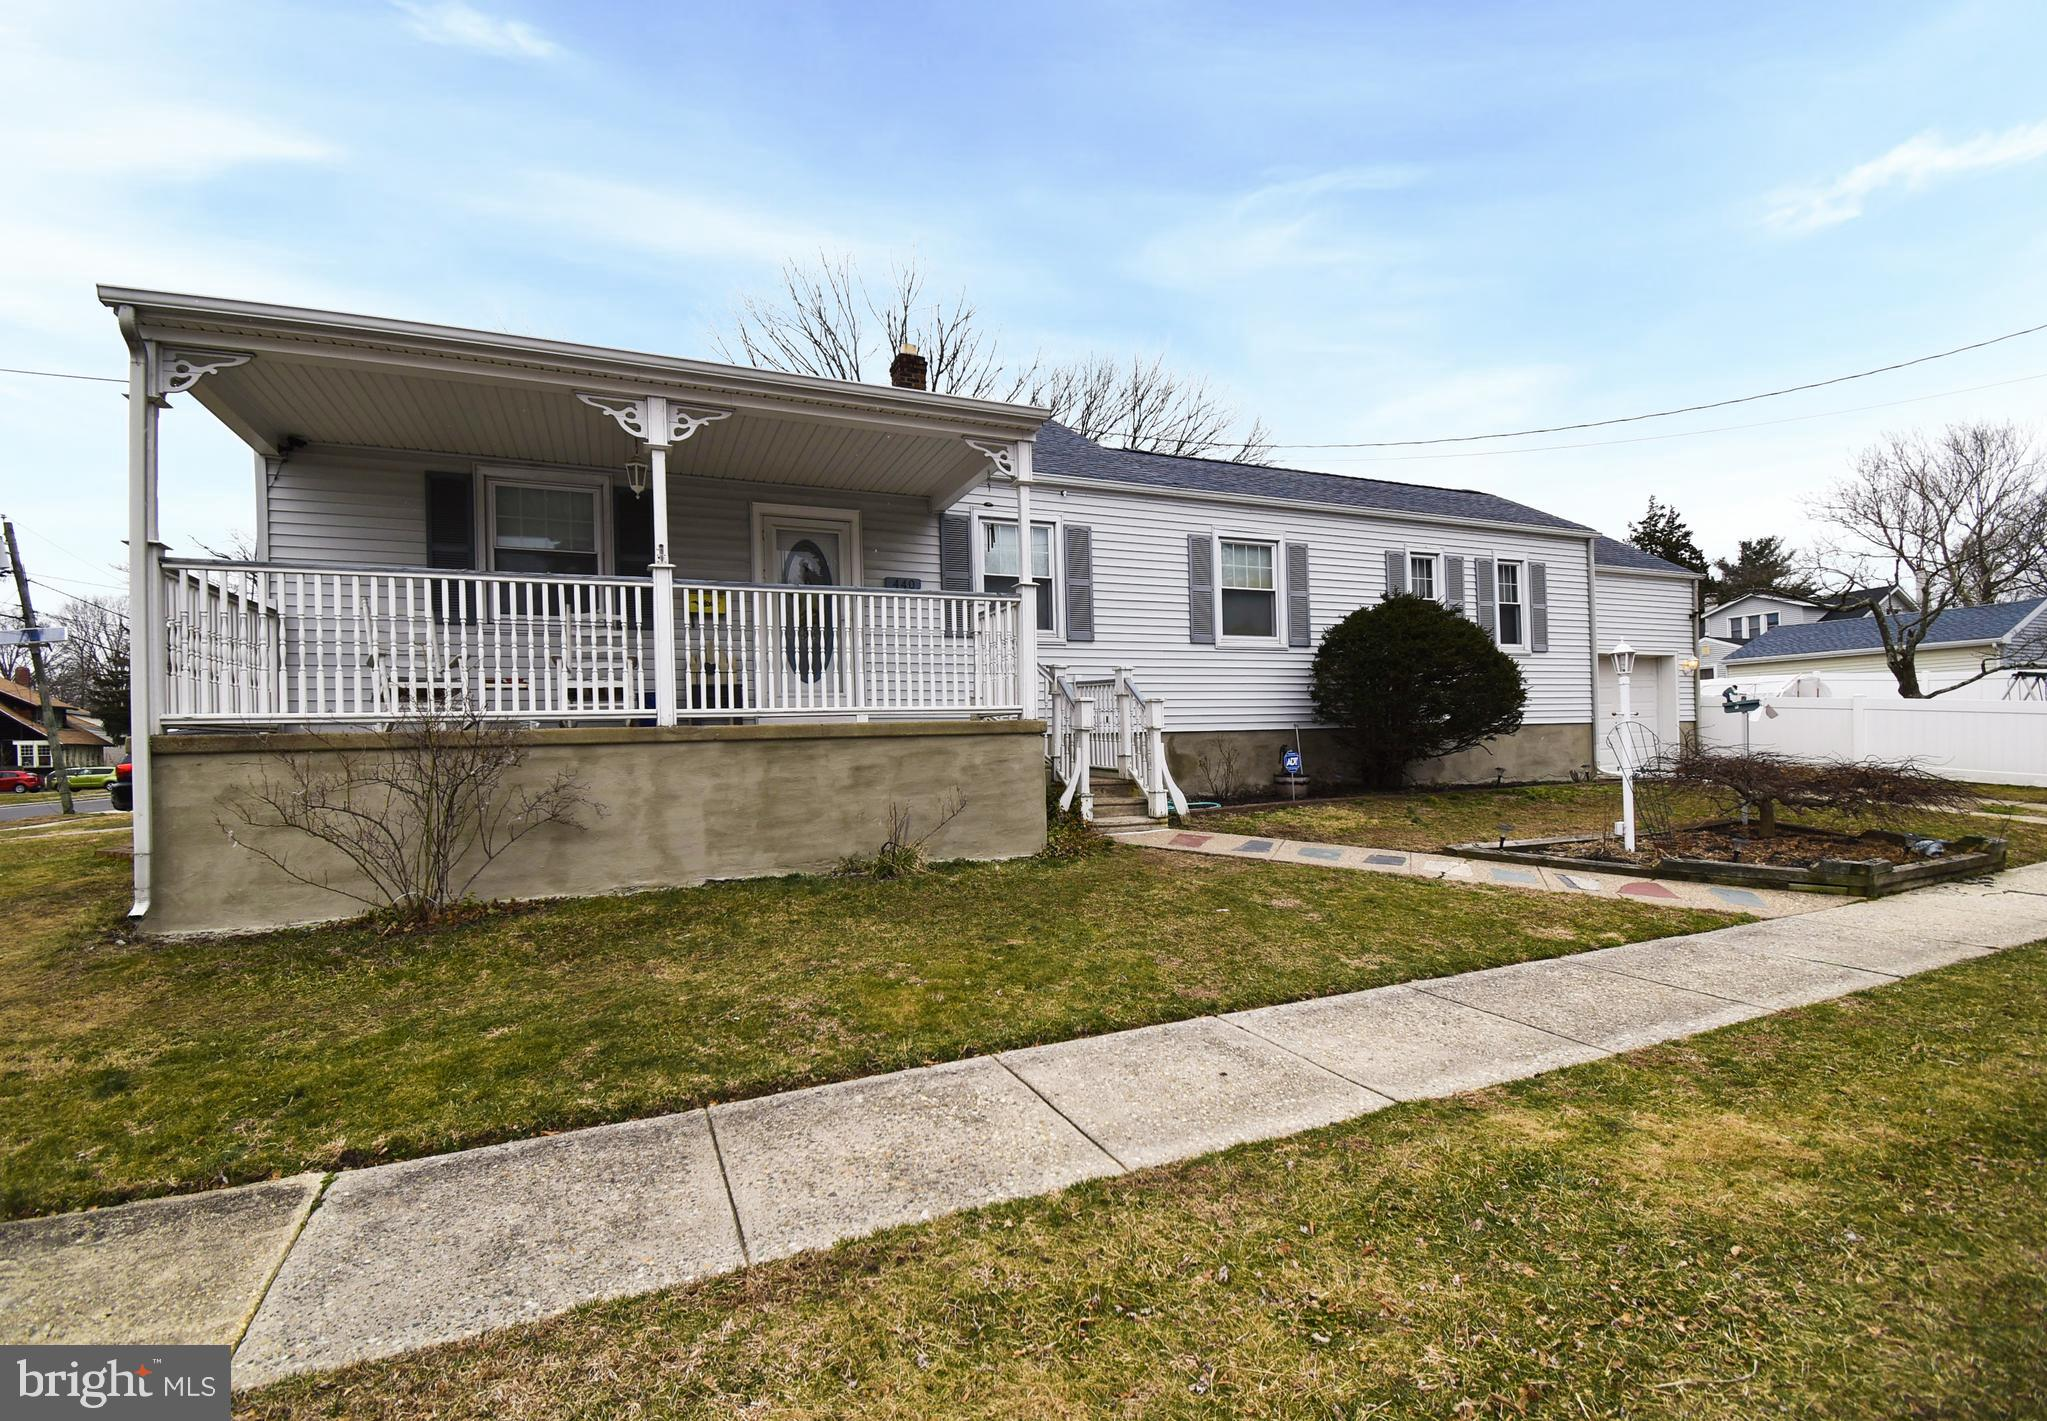 440 W LINCOLN AVENUE, MAGNOLIA, NJ 08049